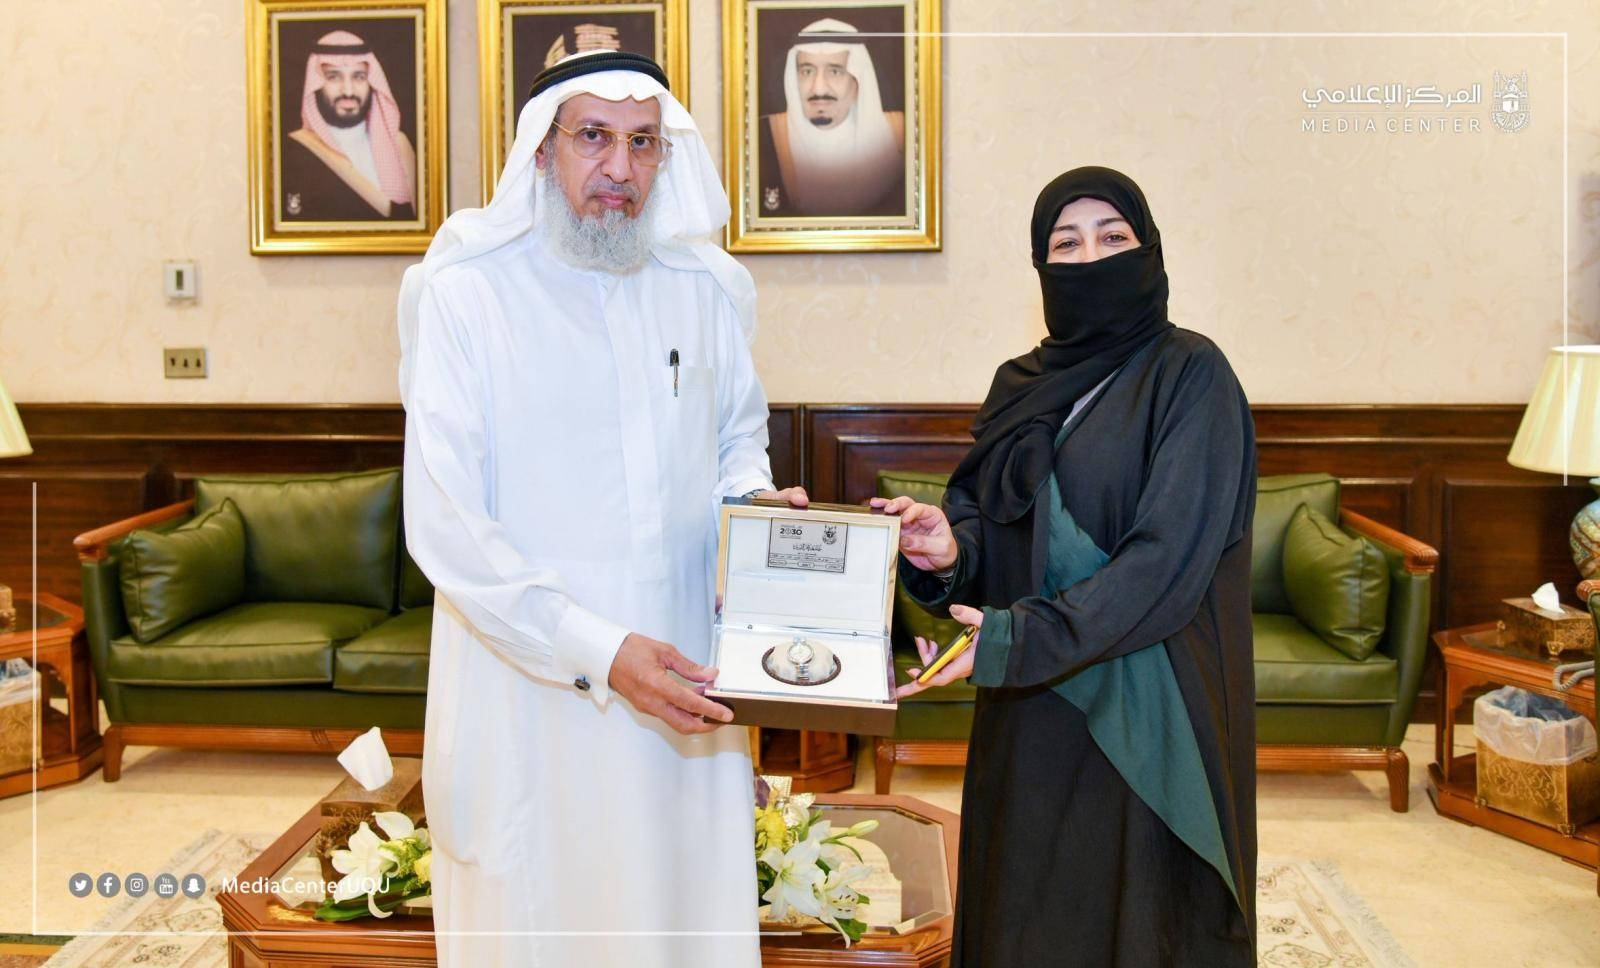 Umm Al-Qura University (UQU) President Prof. Abdullah Bafail honoring Dr. Hanaa Yamani for winning the 17th Middle East Future Leaders Excellence Award in a recent ceremony held in Makkah. — SG